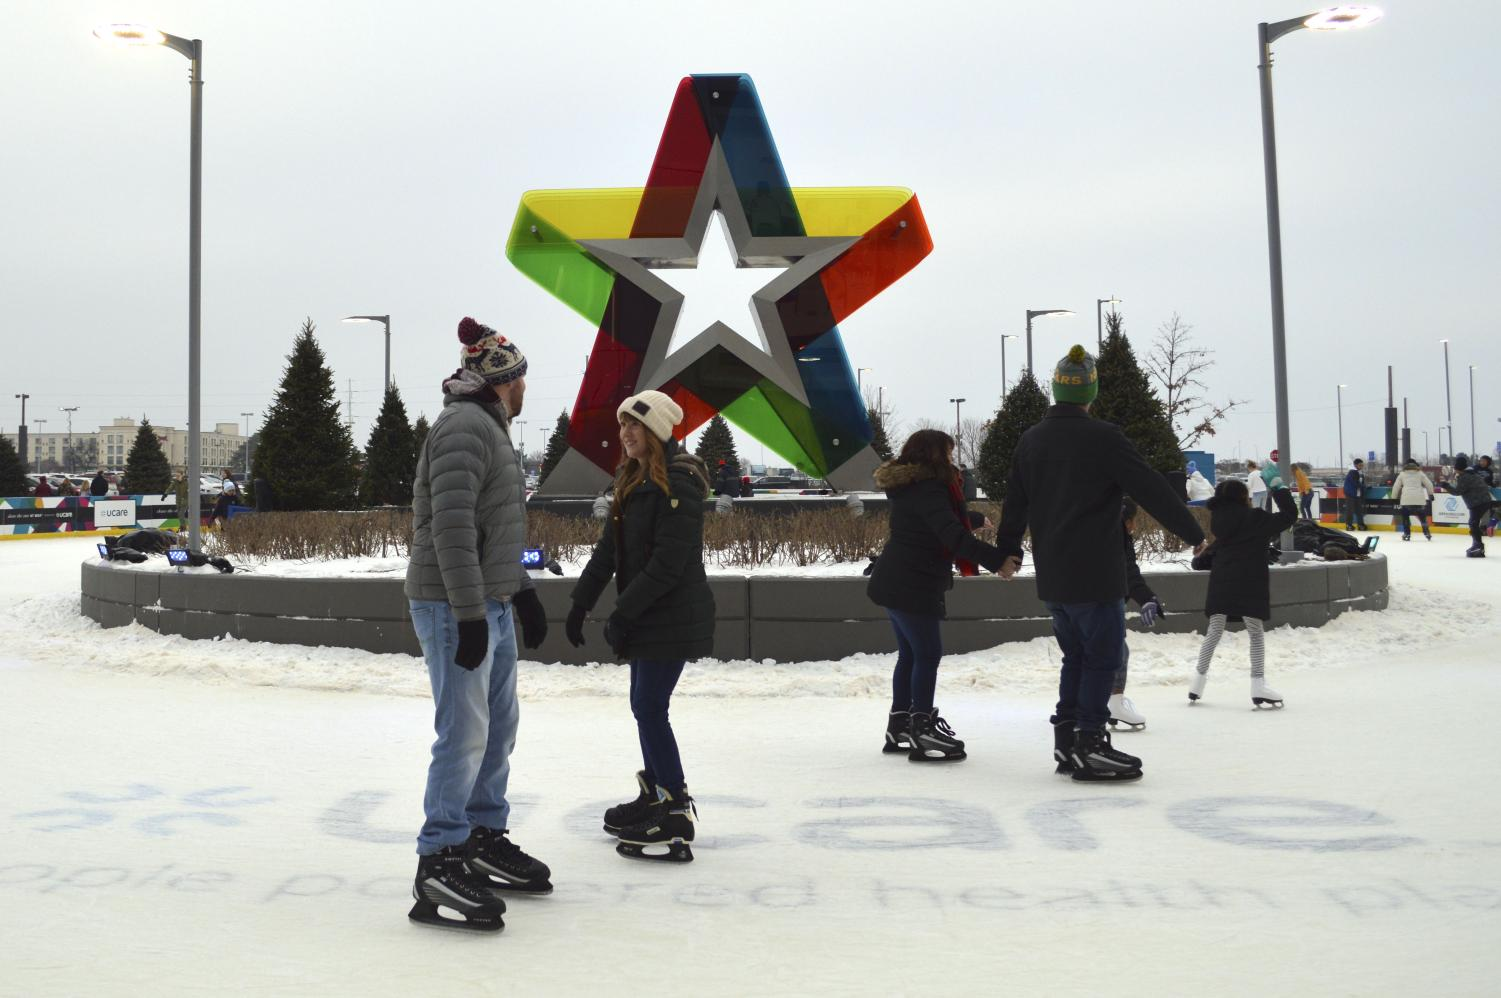 The ice skating rink outside of the Mall of America which closes on Jan. 27. According to the Mall of America, renting ice skates requires a $5 fee.